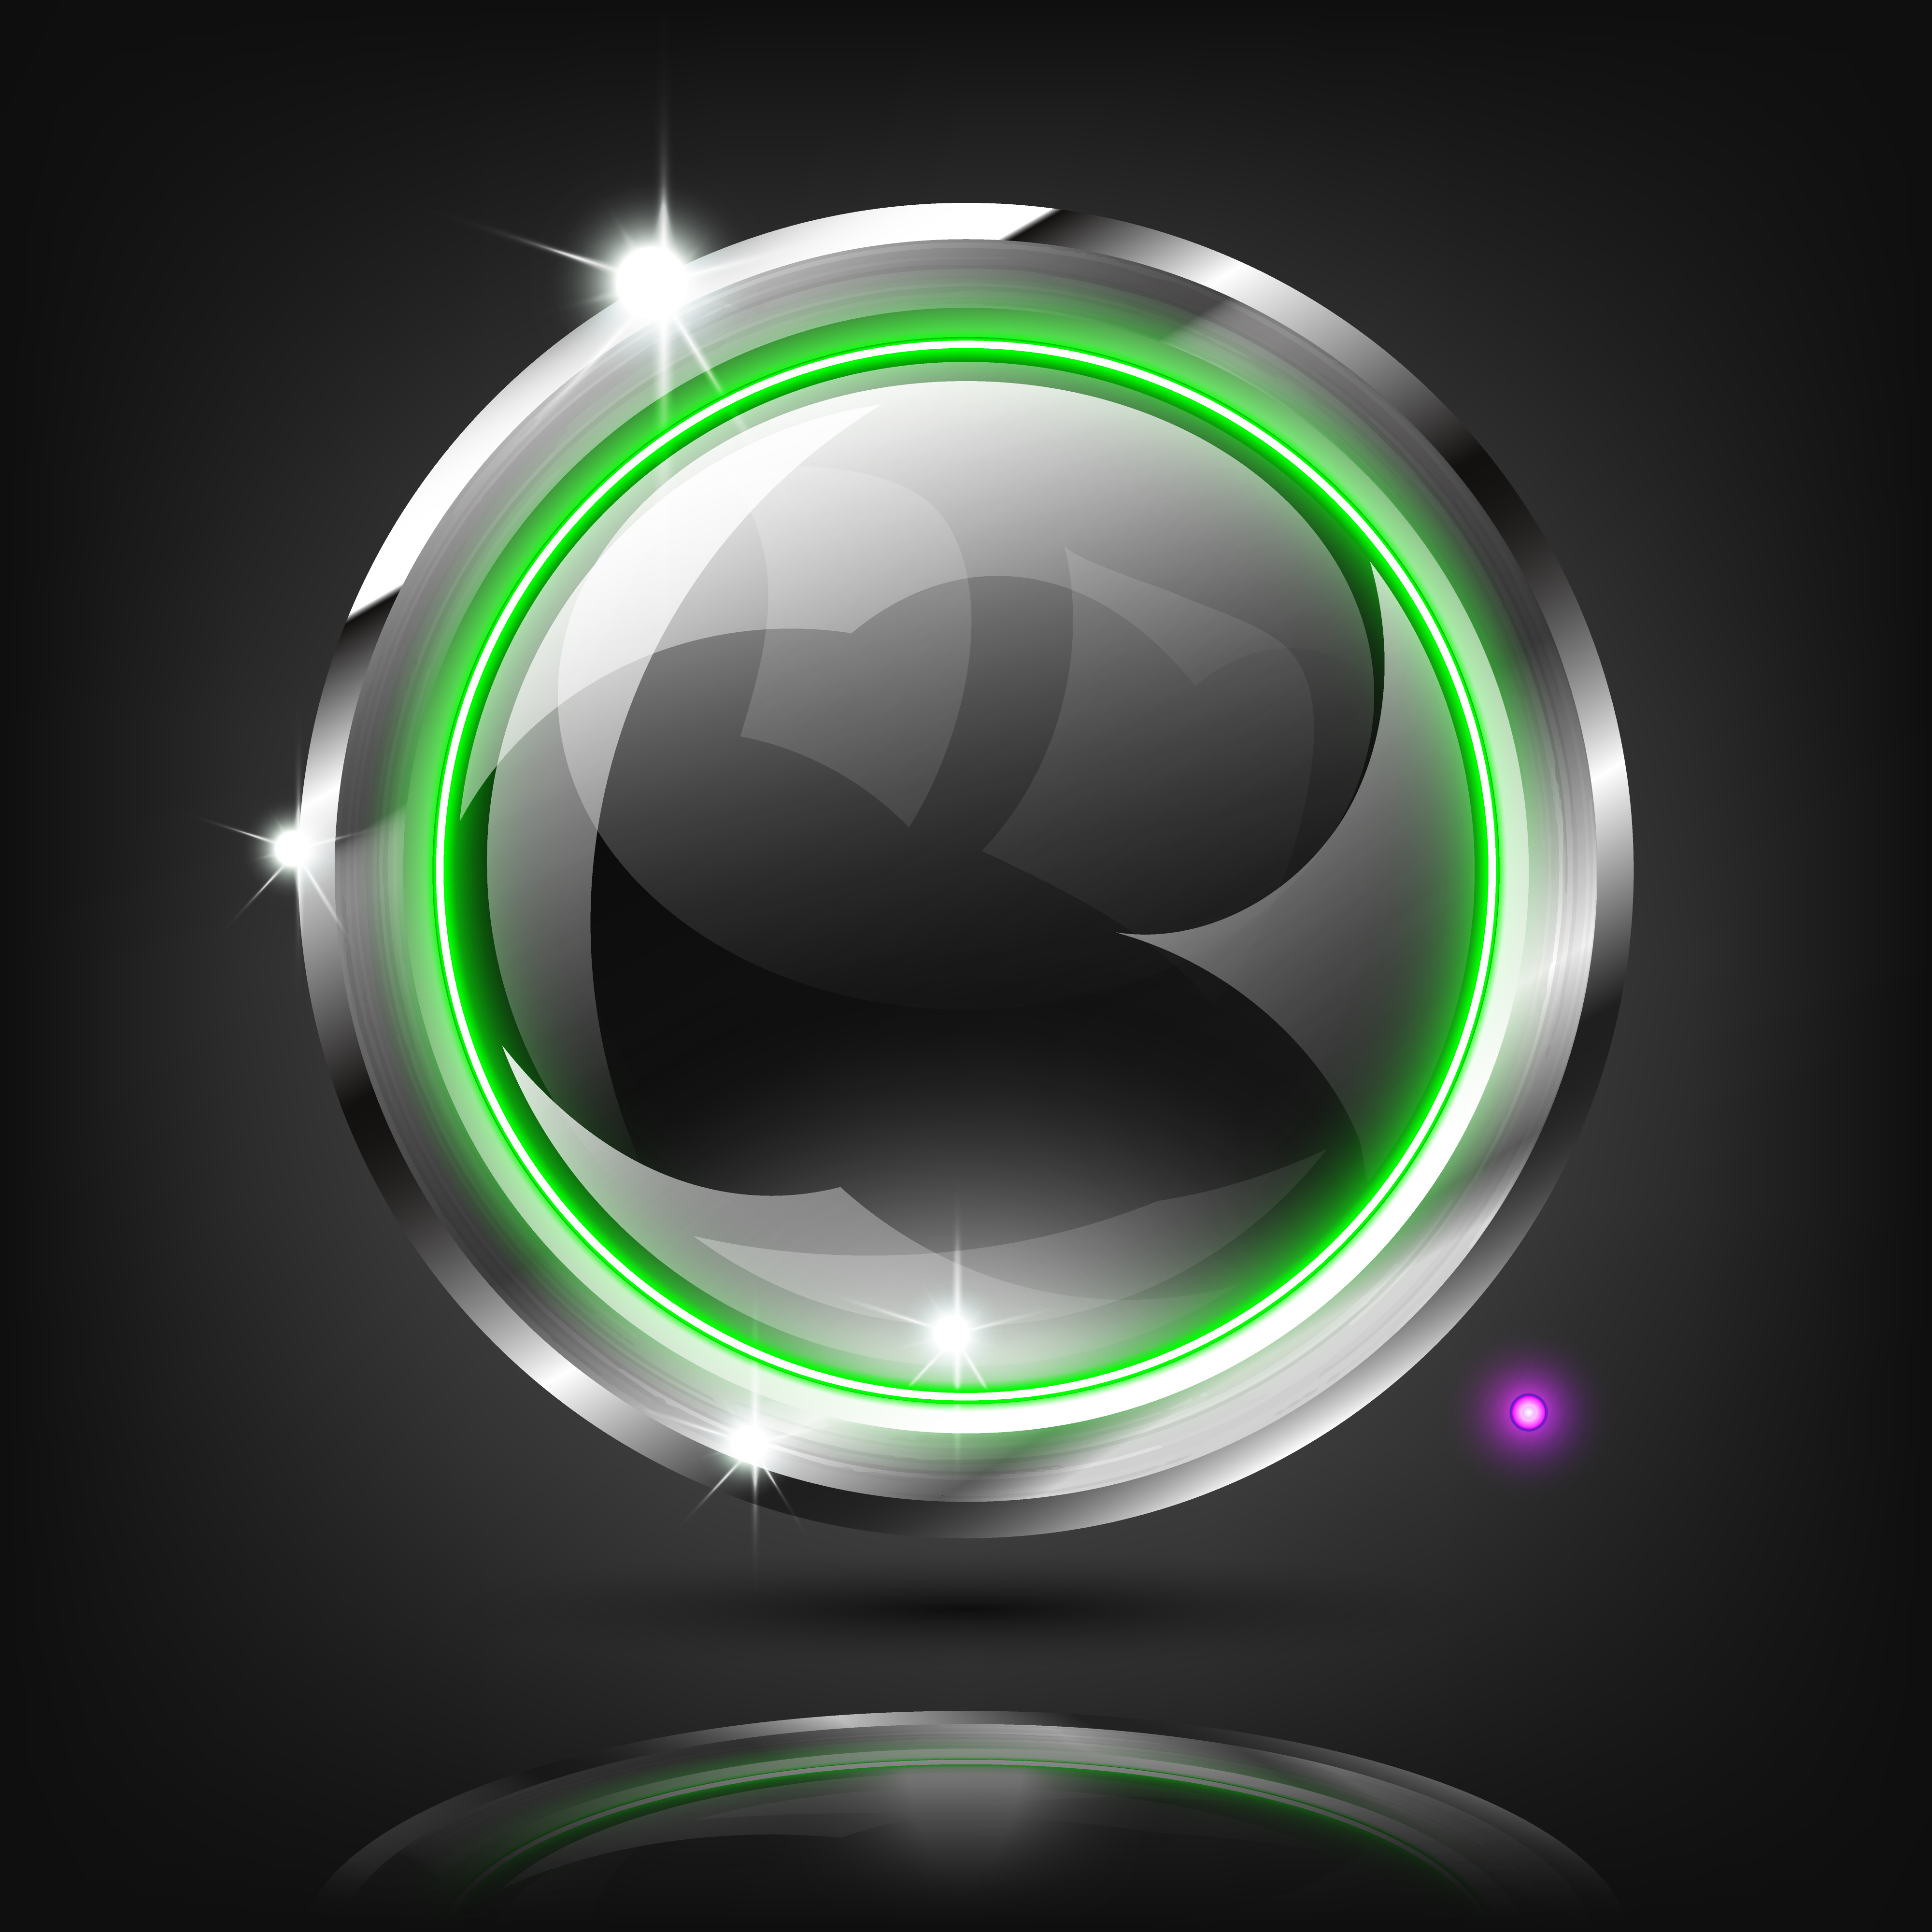 Monochrome Button With Green Ring Light On Dark Background